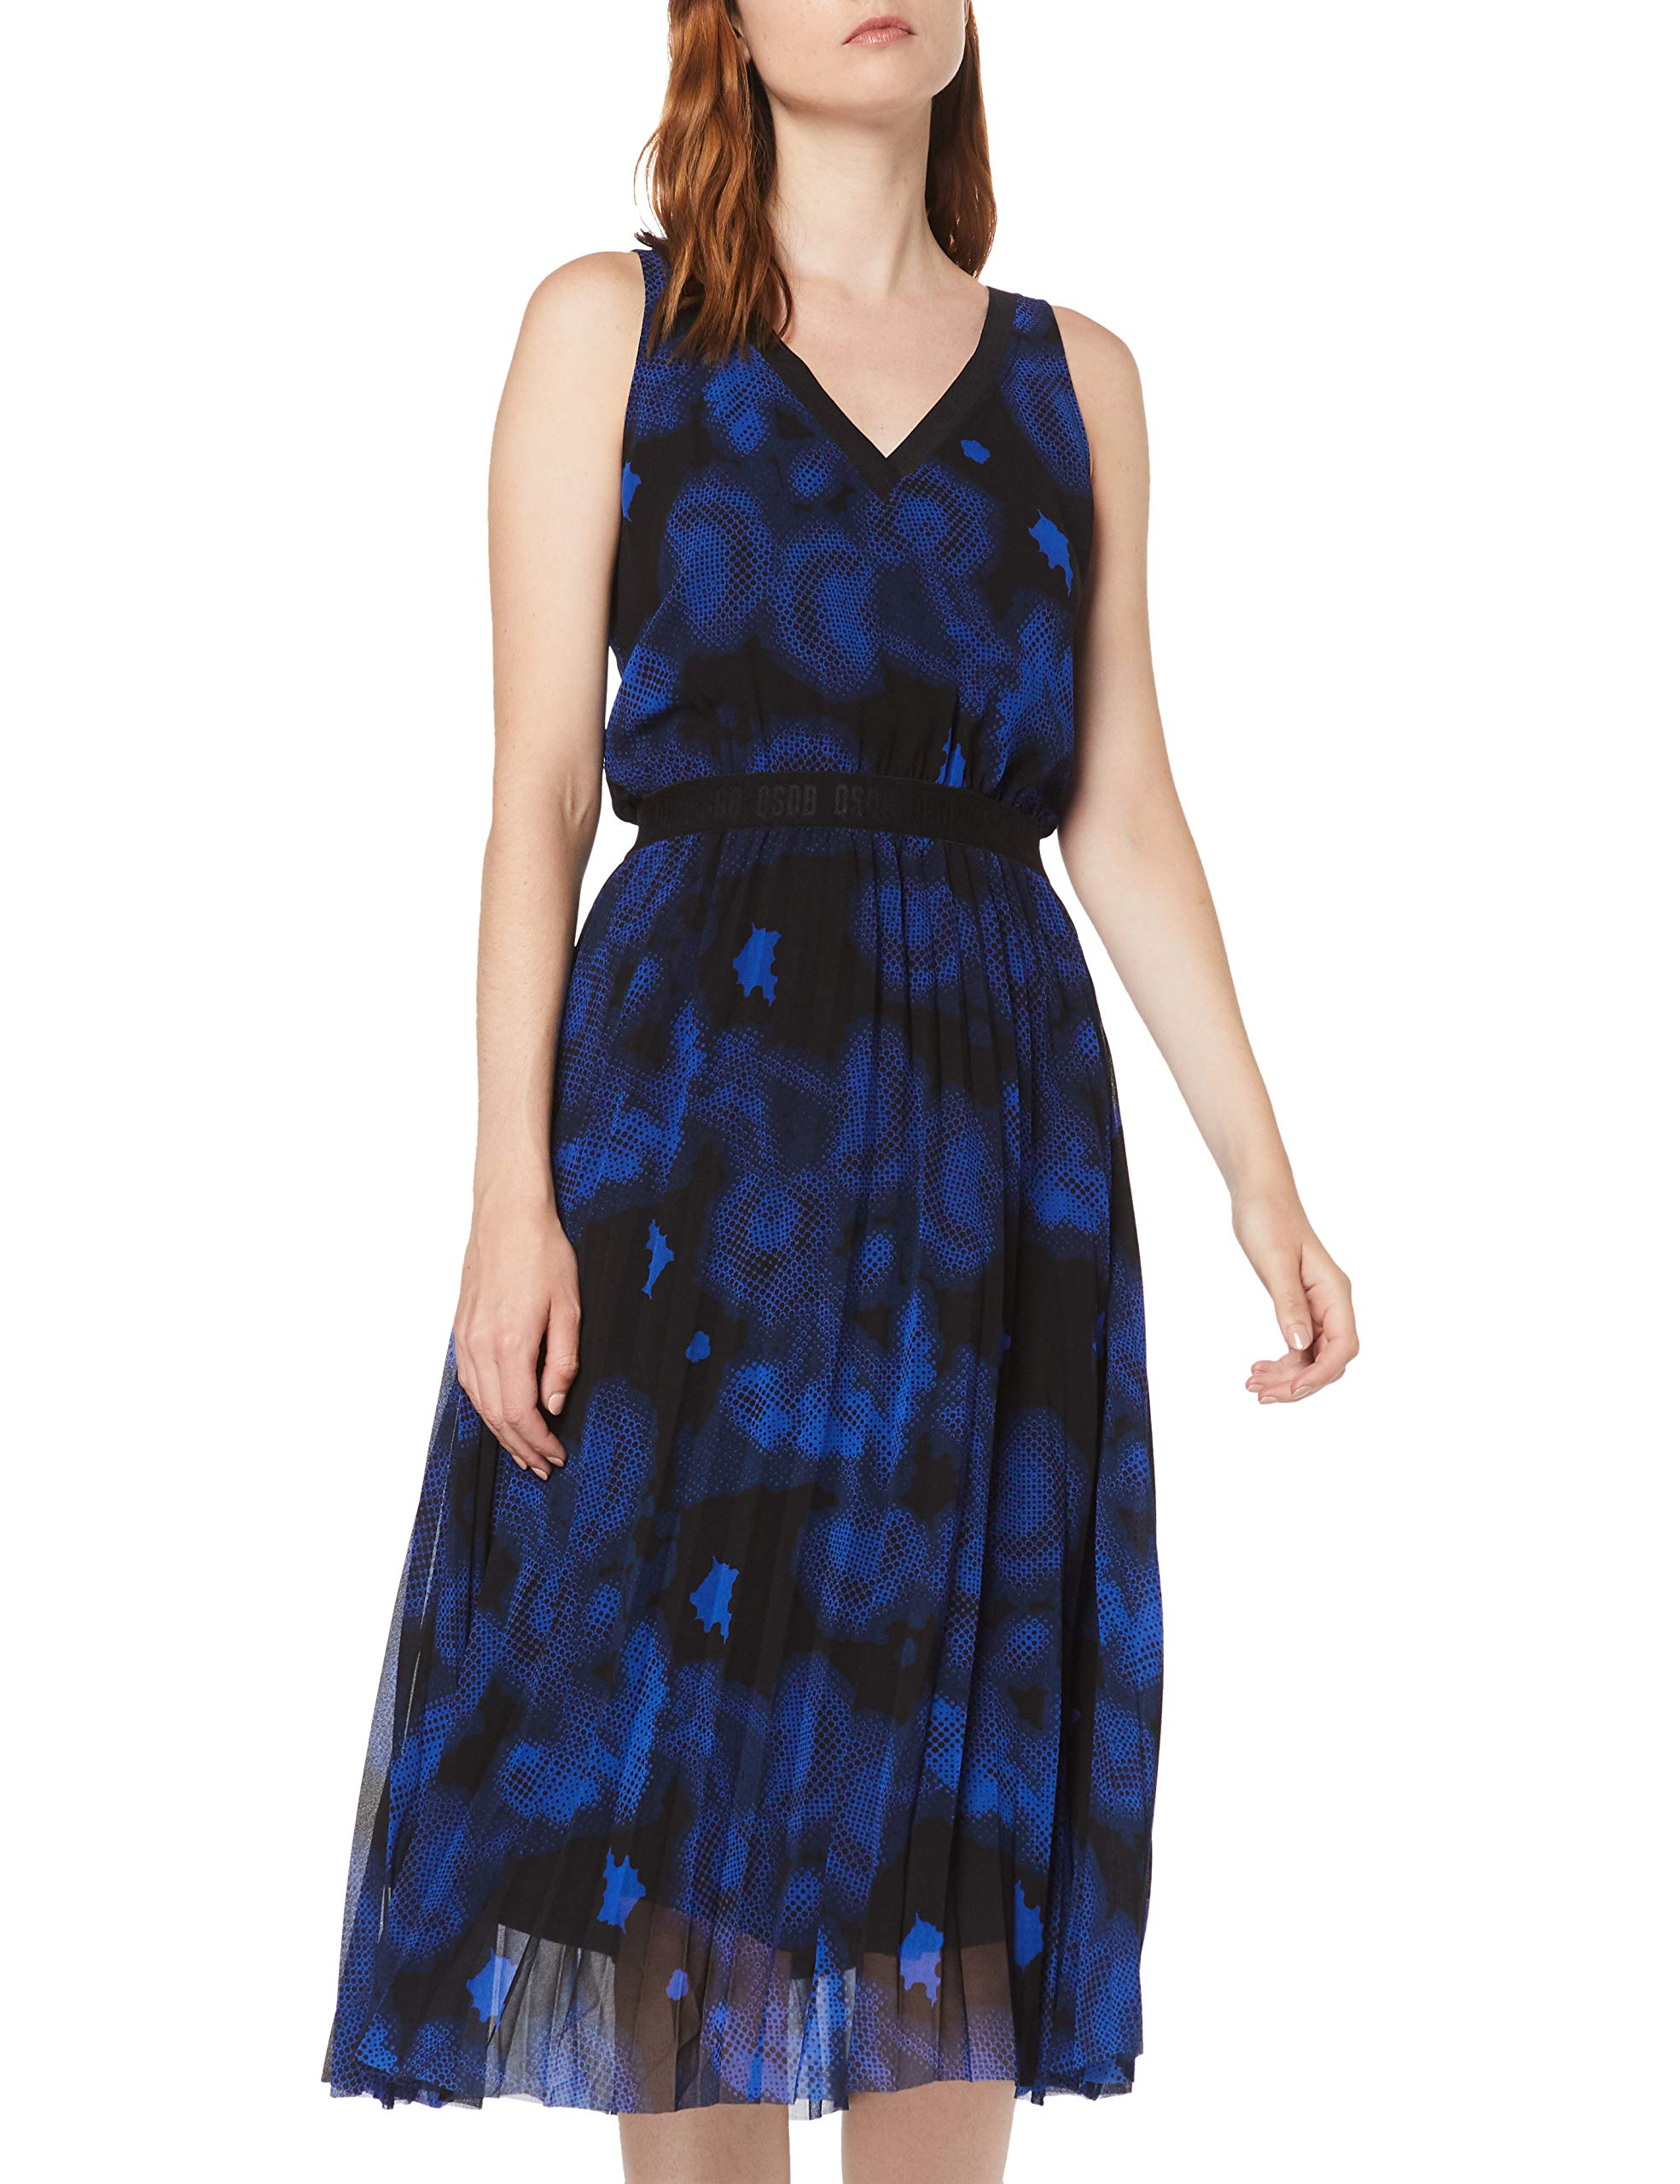 Designed RobeNoirblack Aop royal Q Fabricant38Femme By s 2004774004 Blue 99a140taille xCoderWB